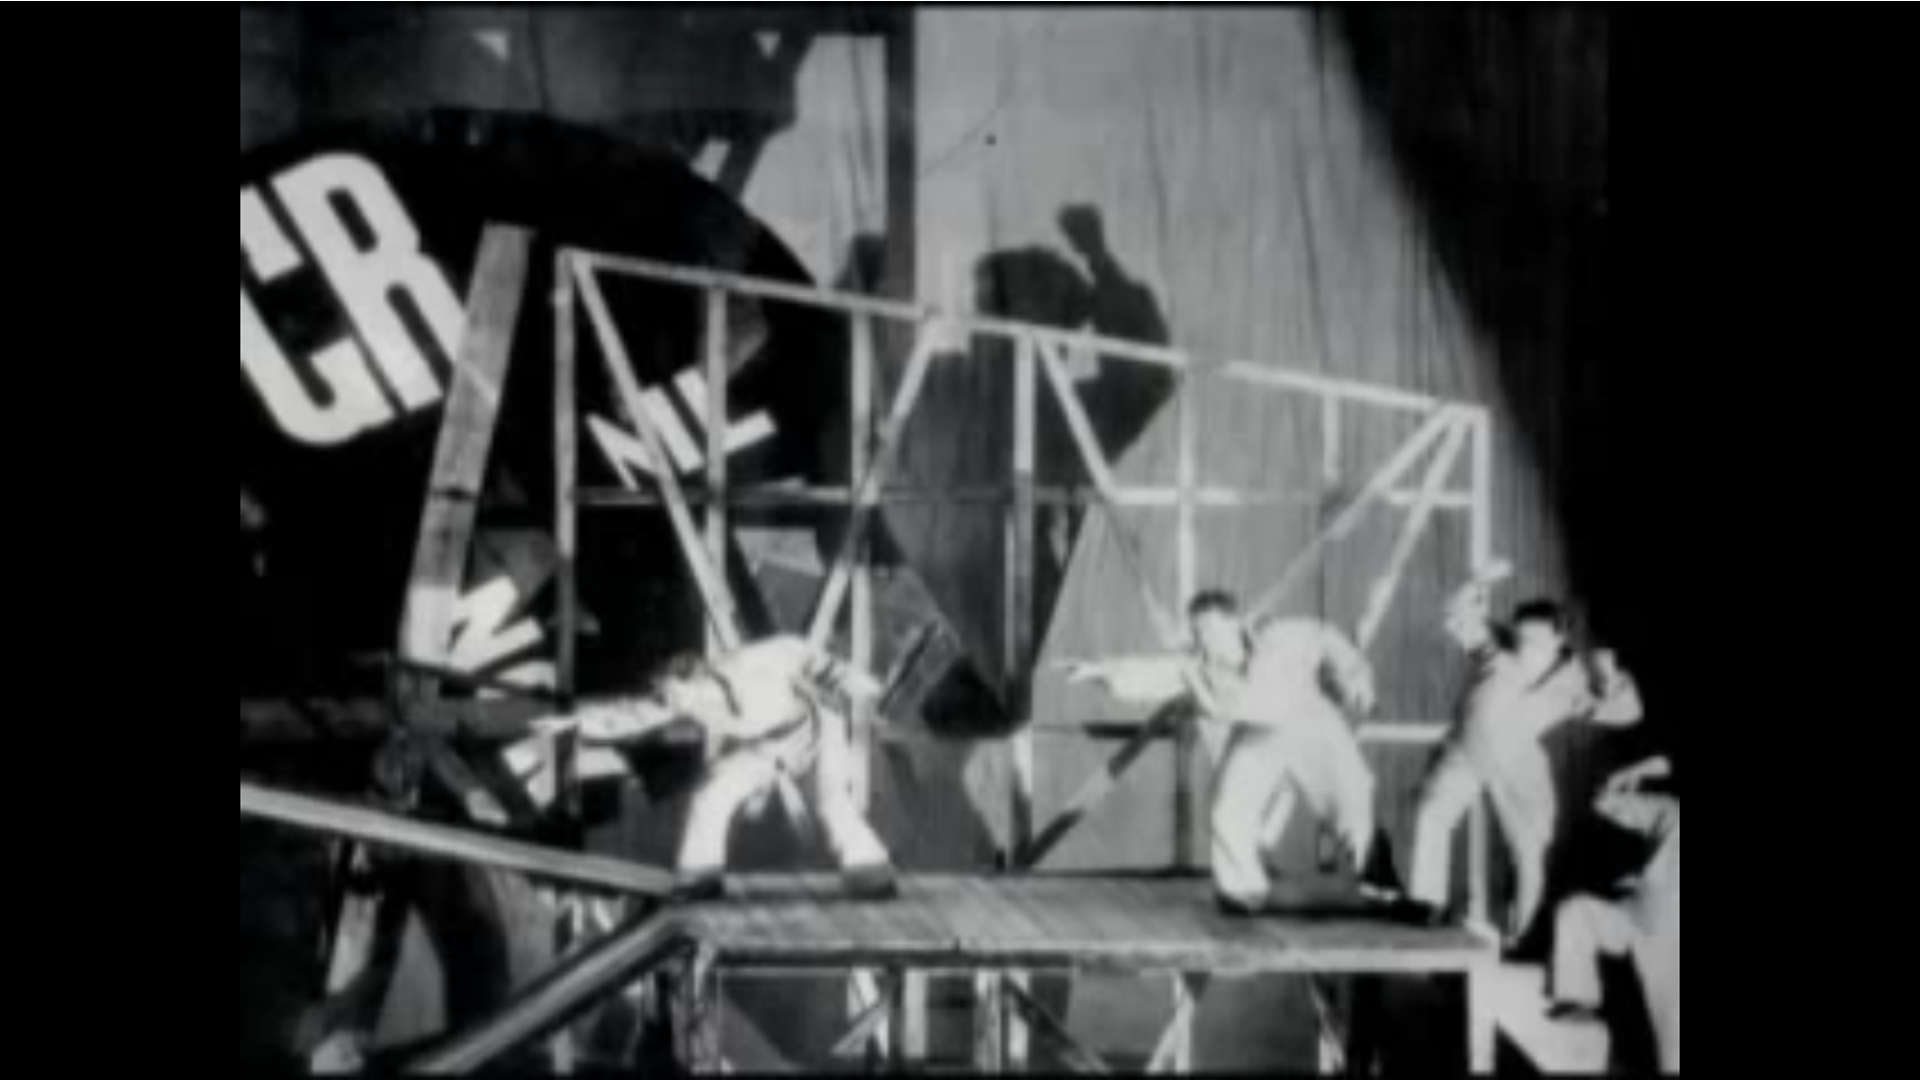 Watch Full Movie - Meyerhold, Theatre and the Russian Avant-garde